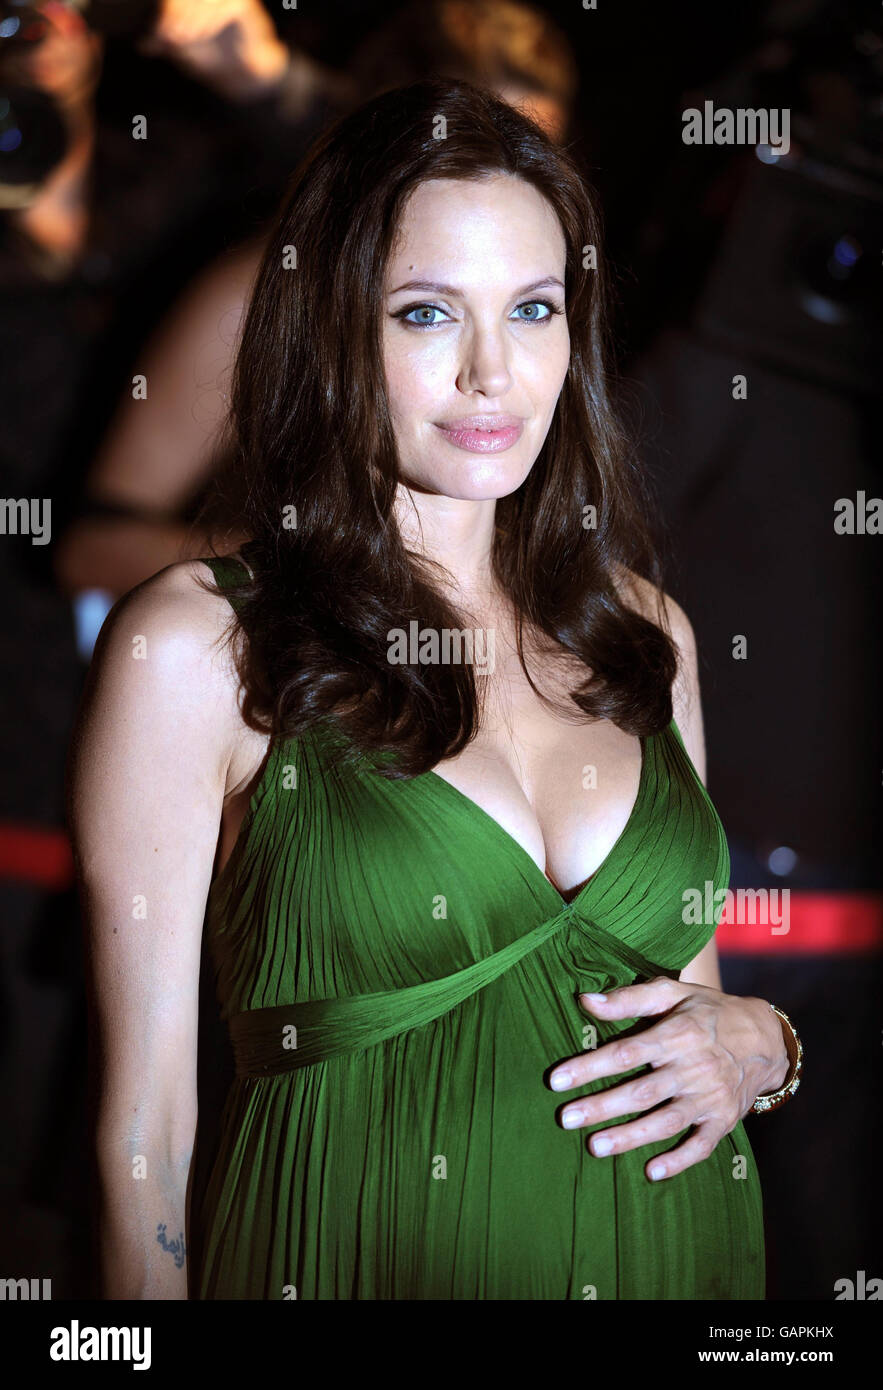 61st Cannes Film Festival - Kung Fu Panda After Party - Stock Image